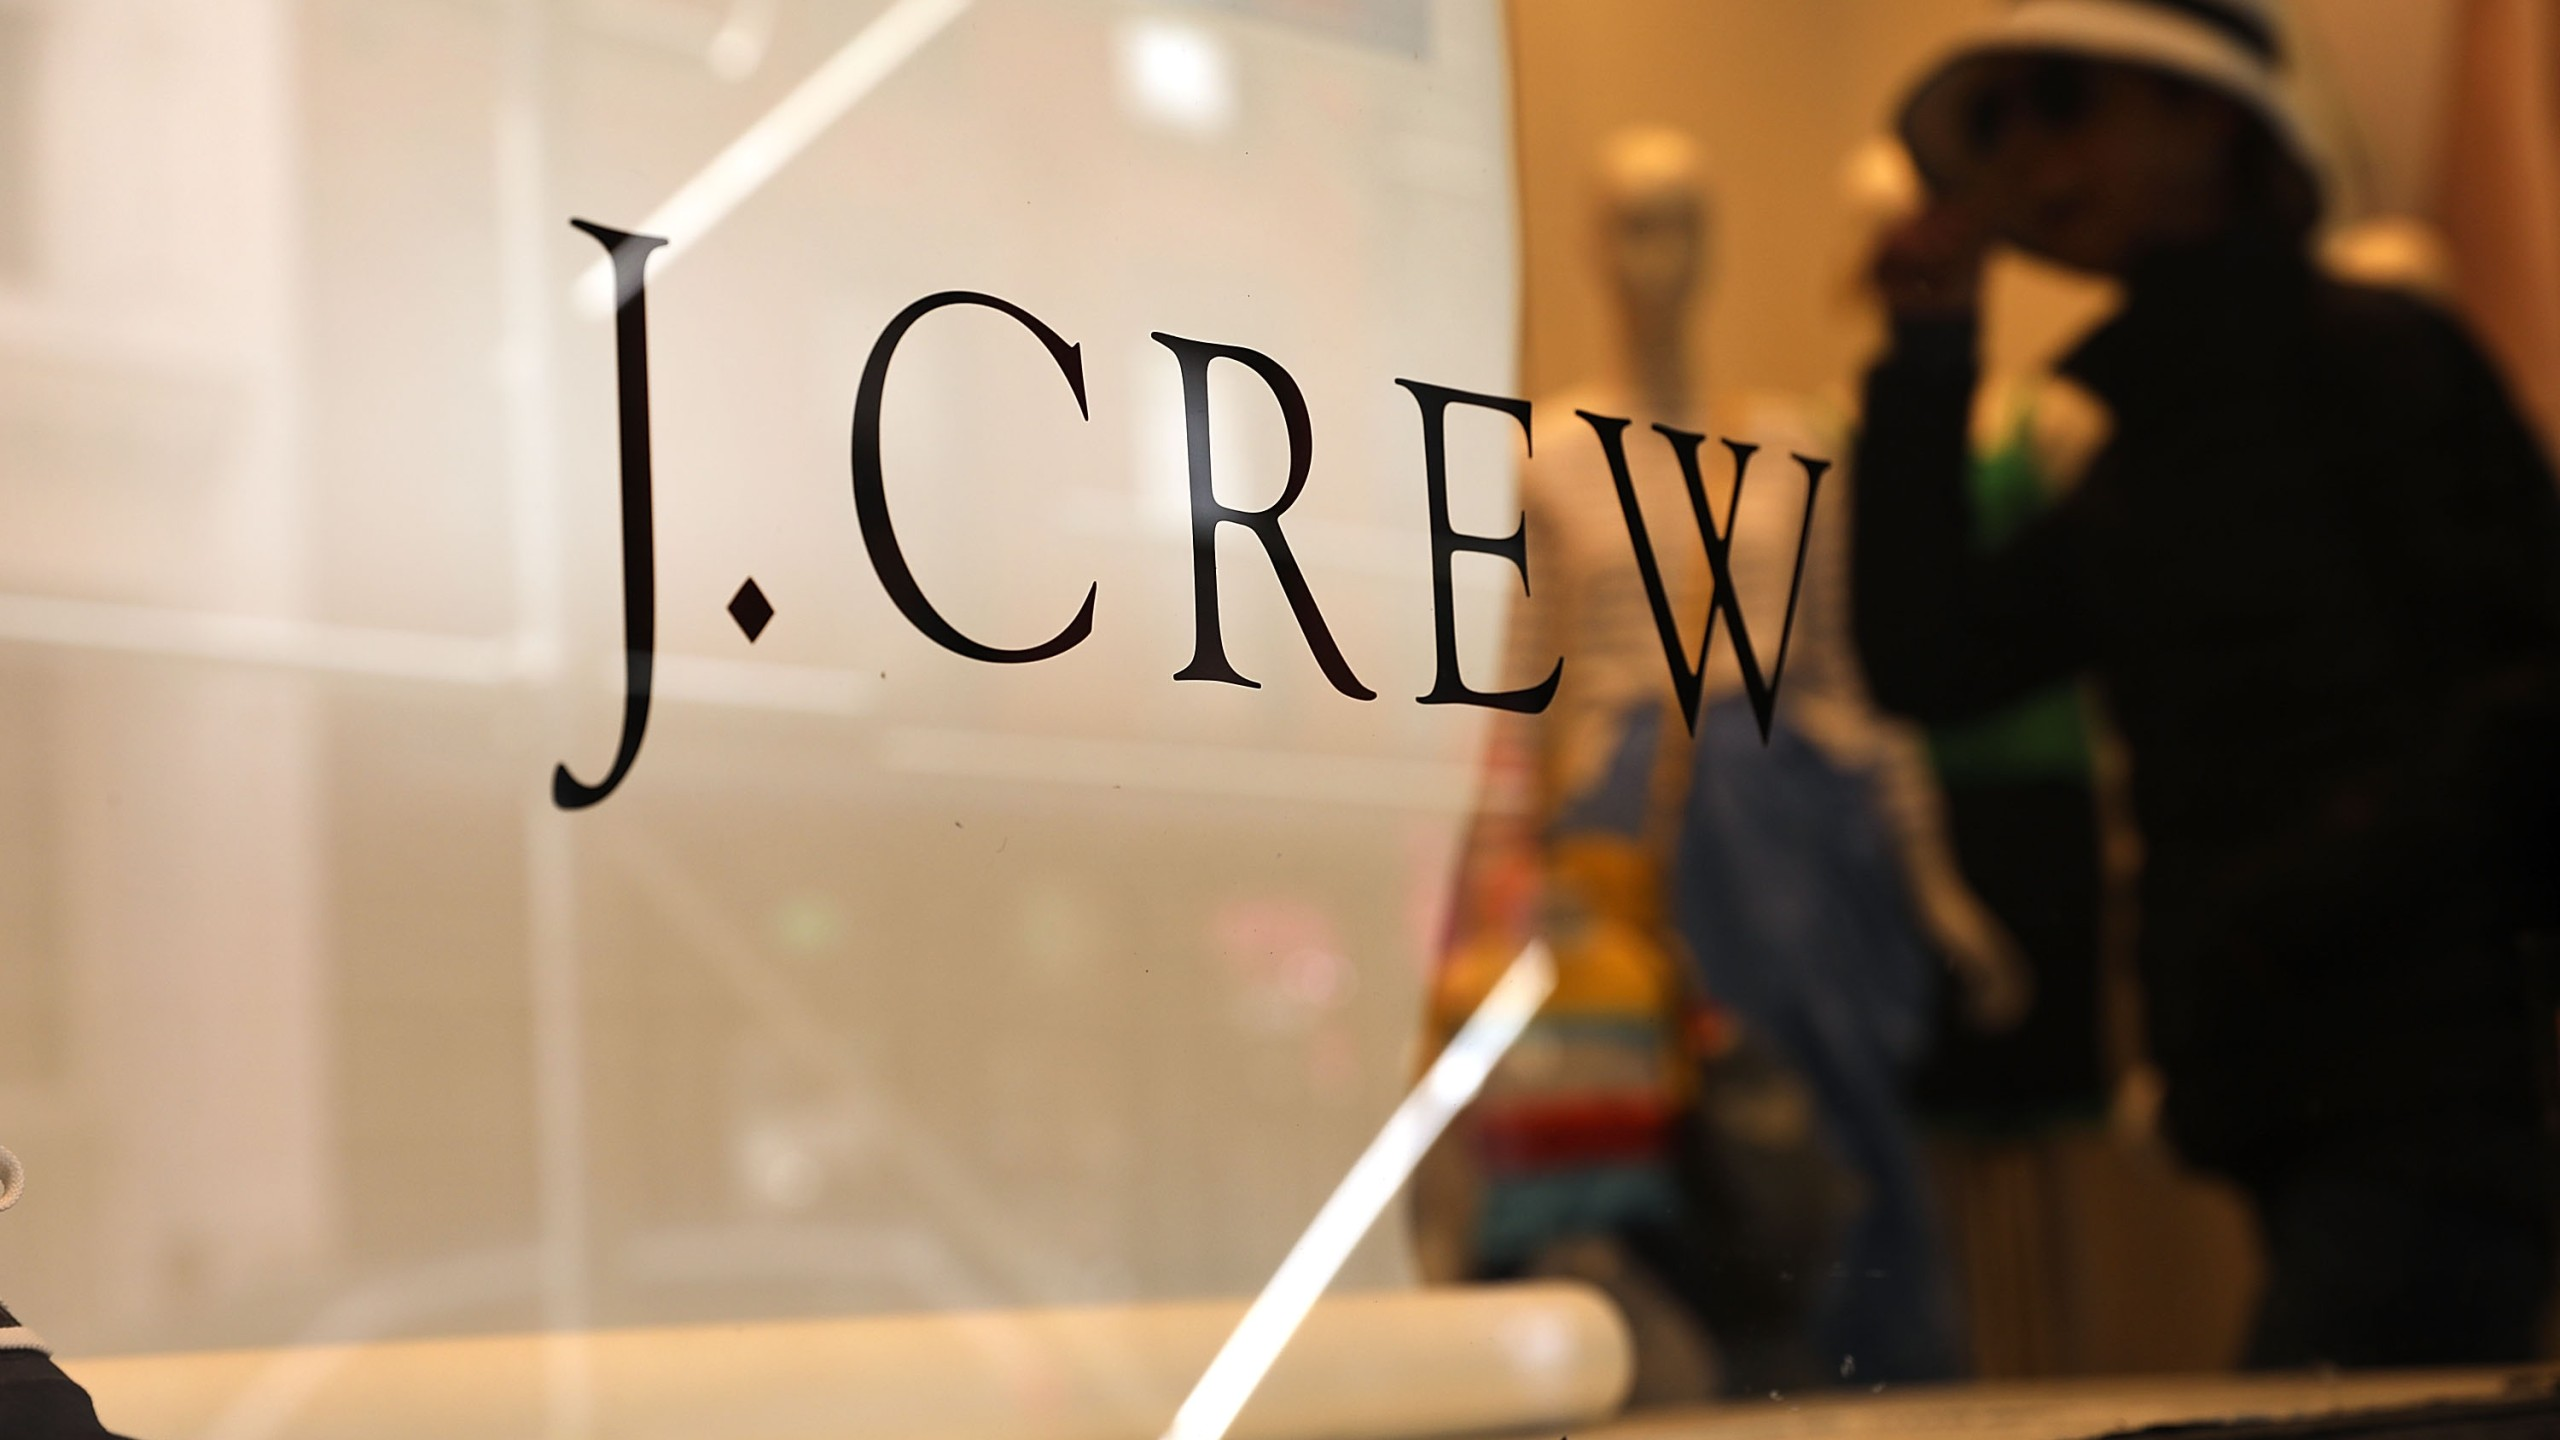 A J. Crew store stands in lower Manhattan on May 12, 2017 in New York City. (Credit: Spencer Platt/Getty Images)